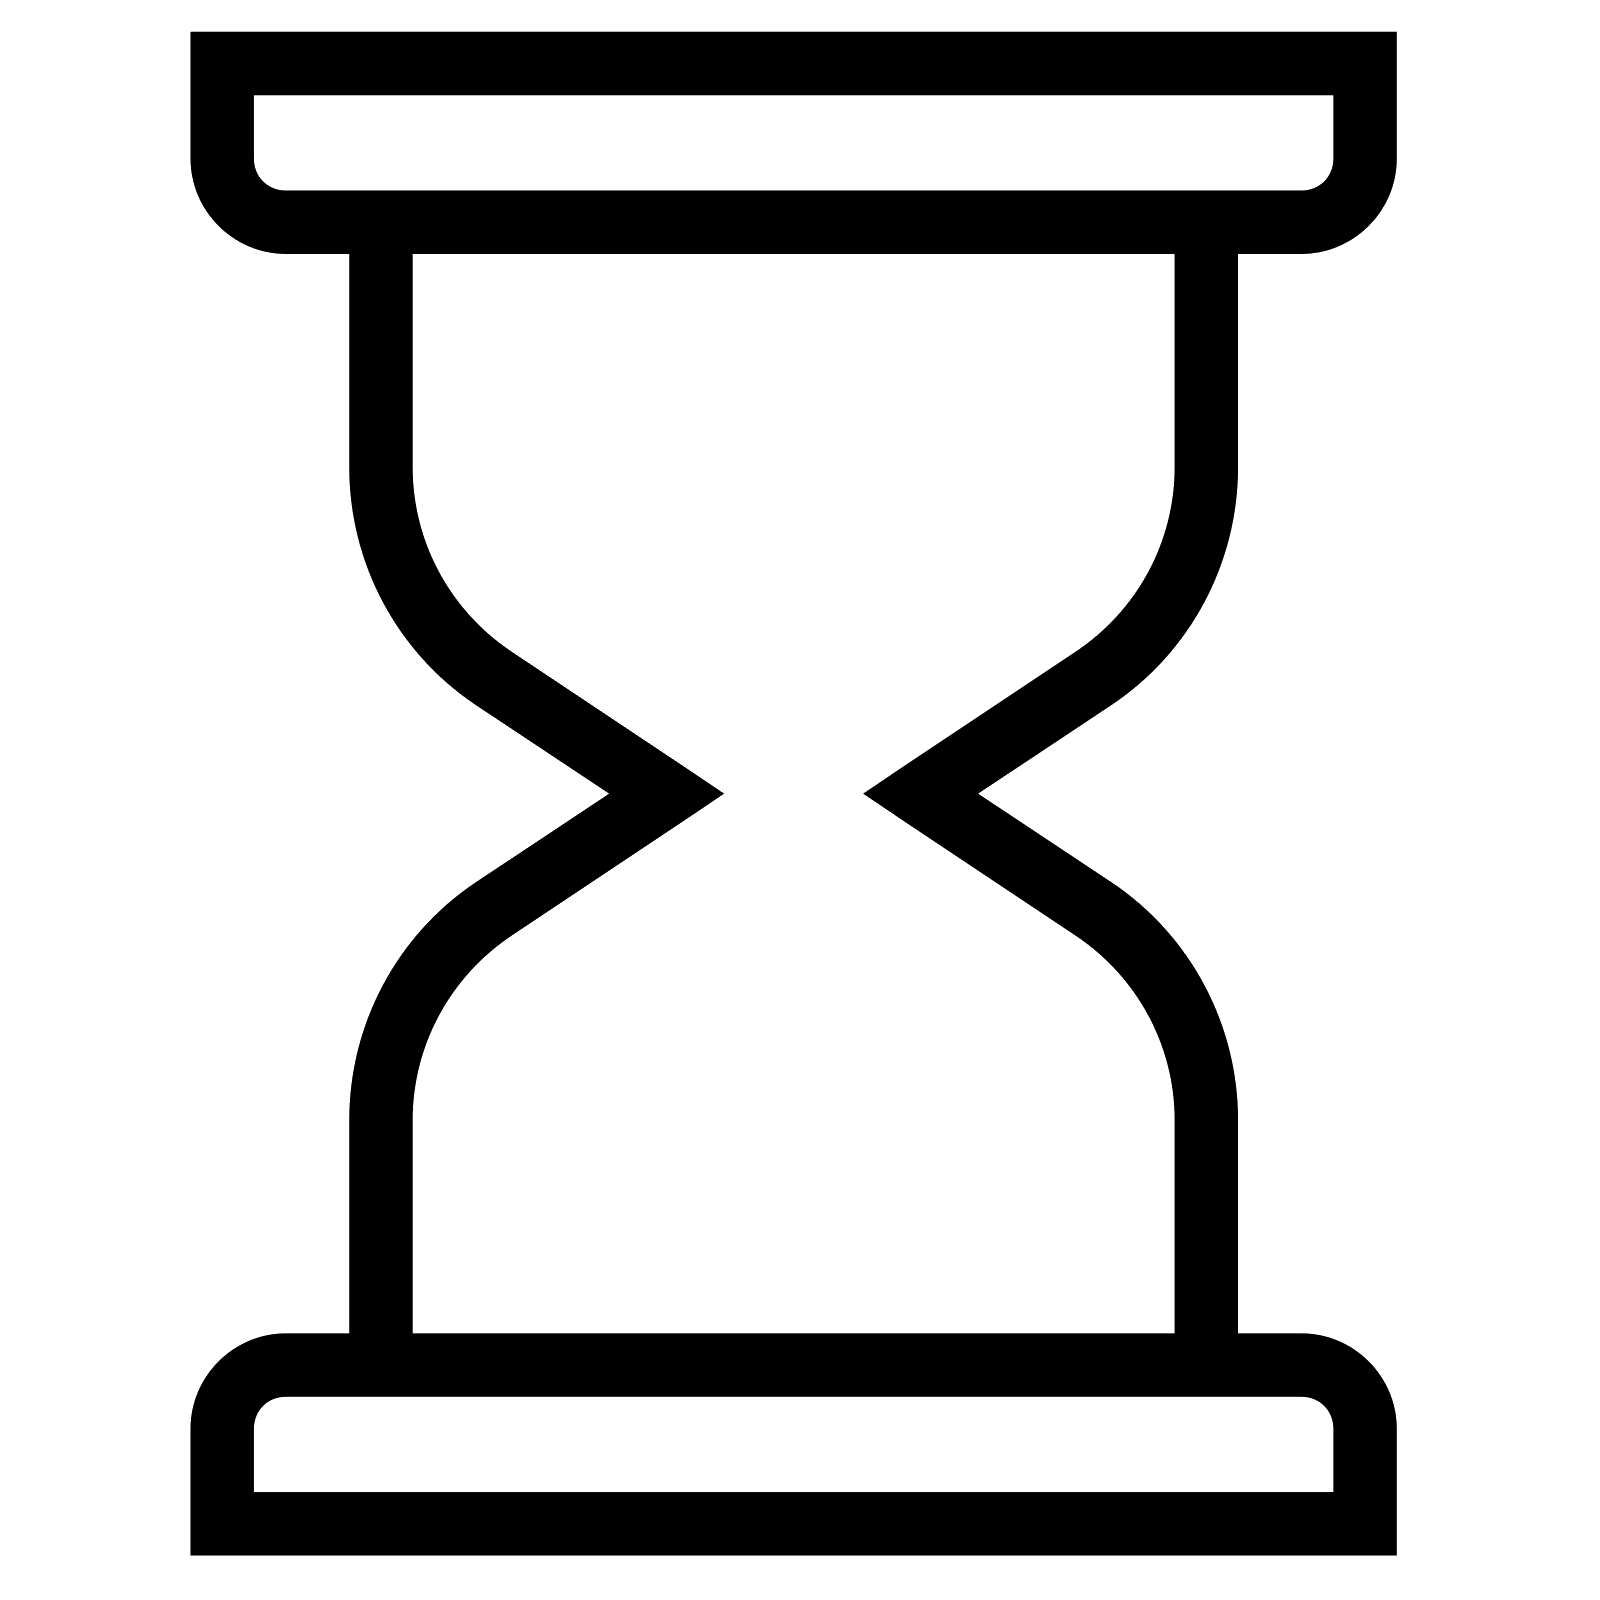 hight resolution of hourglass clipart empty clip arts for